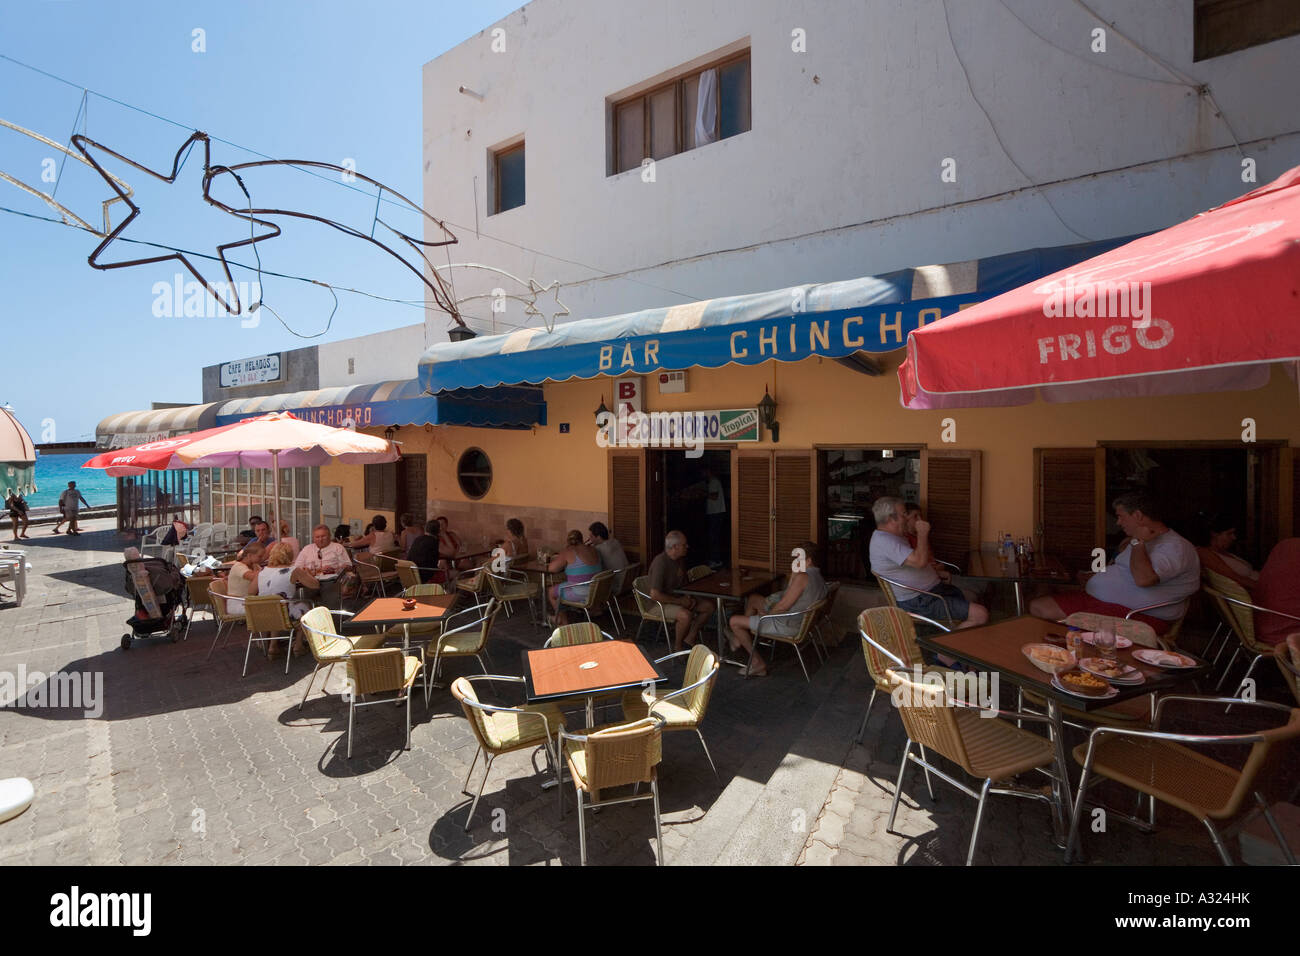 Cafe in the vieux port terra vecchia bastia corsica france stock - Seafront Restaurant In The Old Town Jandia Morro Jable Fuerteventura Canary